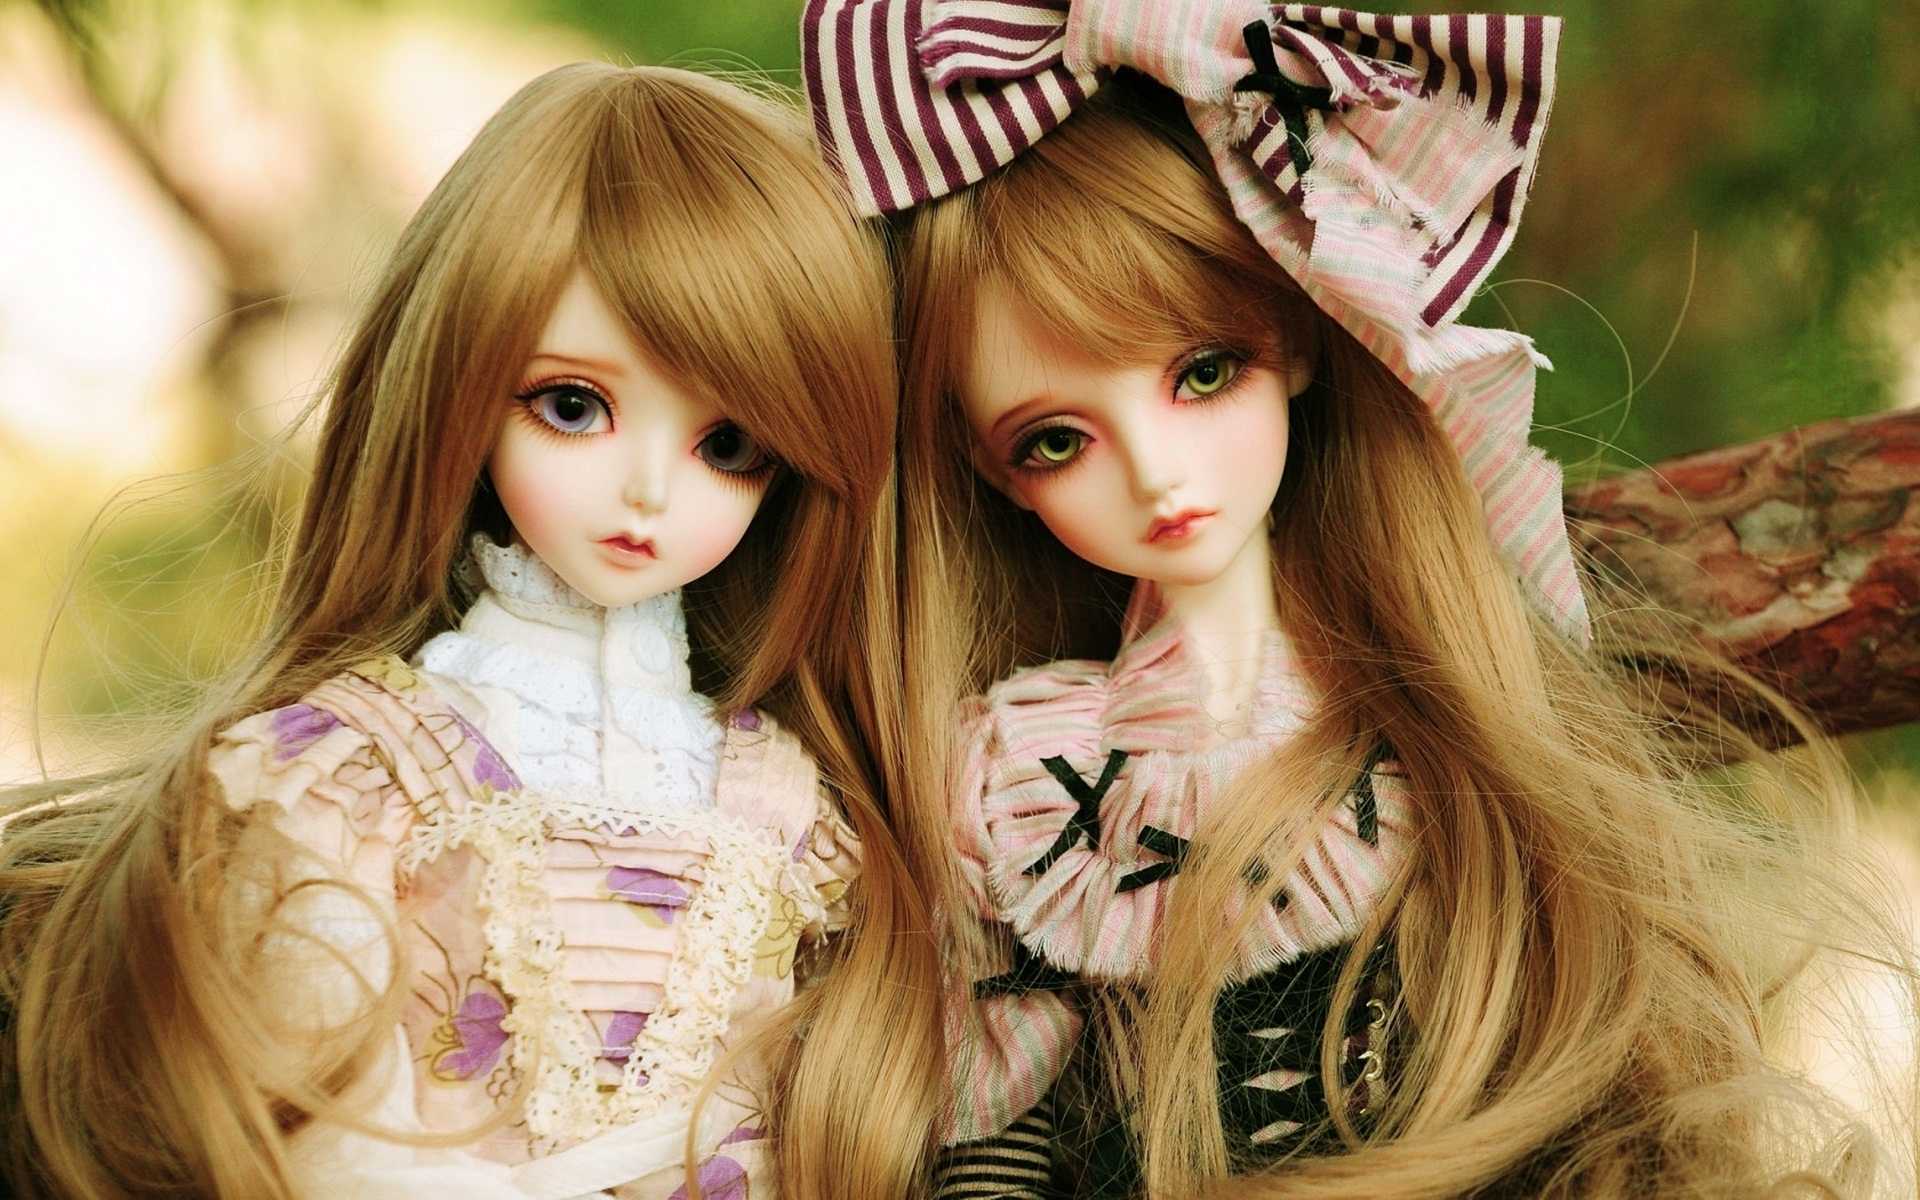 Adorable Toy Doll Wallpaper